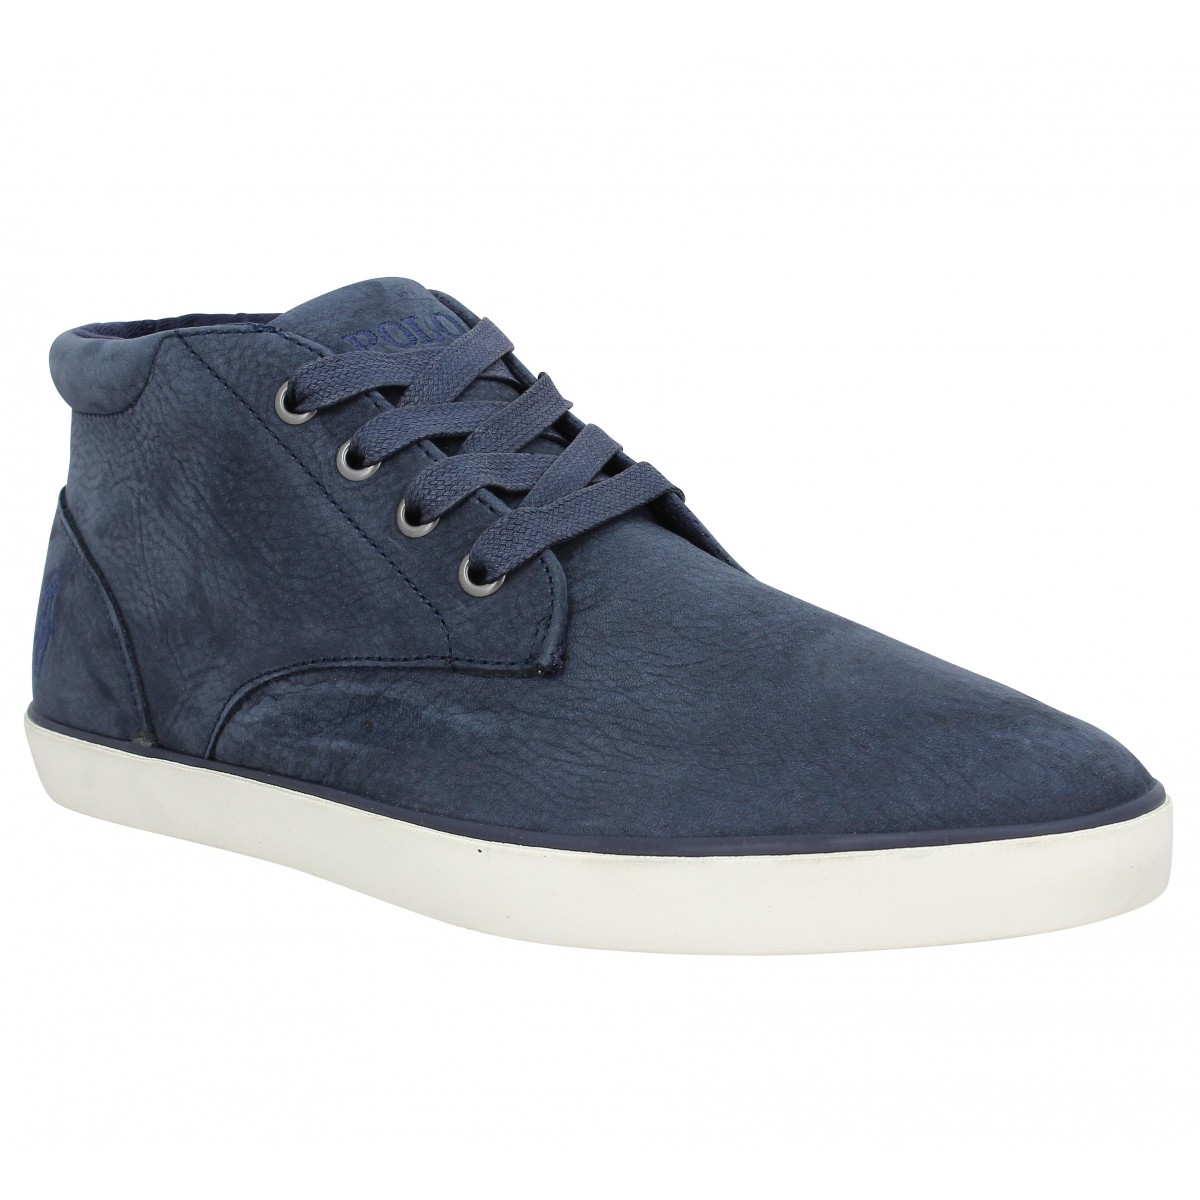 Baskets POLO RALPH LAUREN Odie nubuck Homme Navy